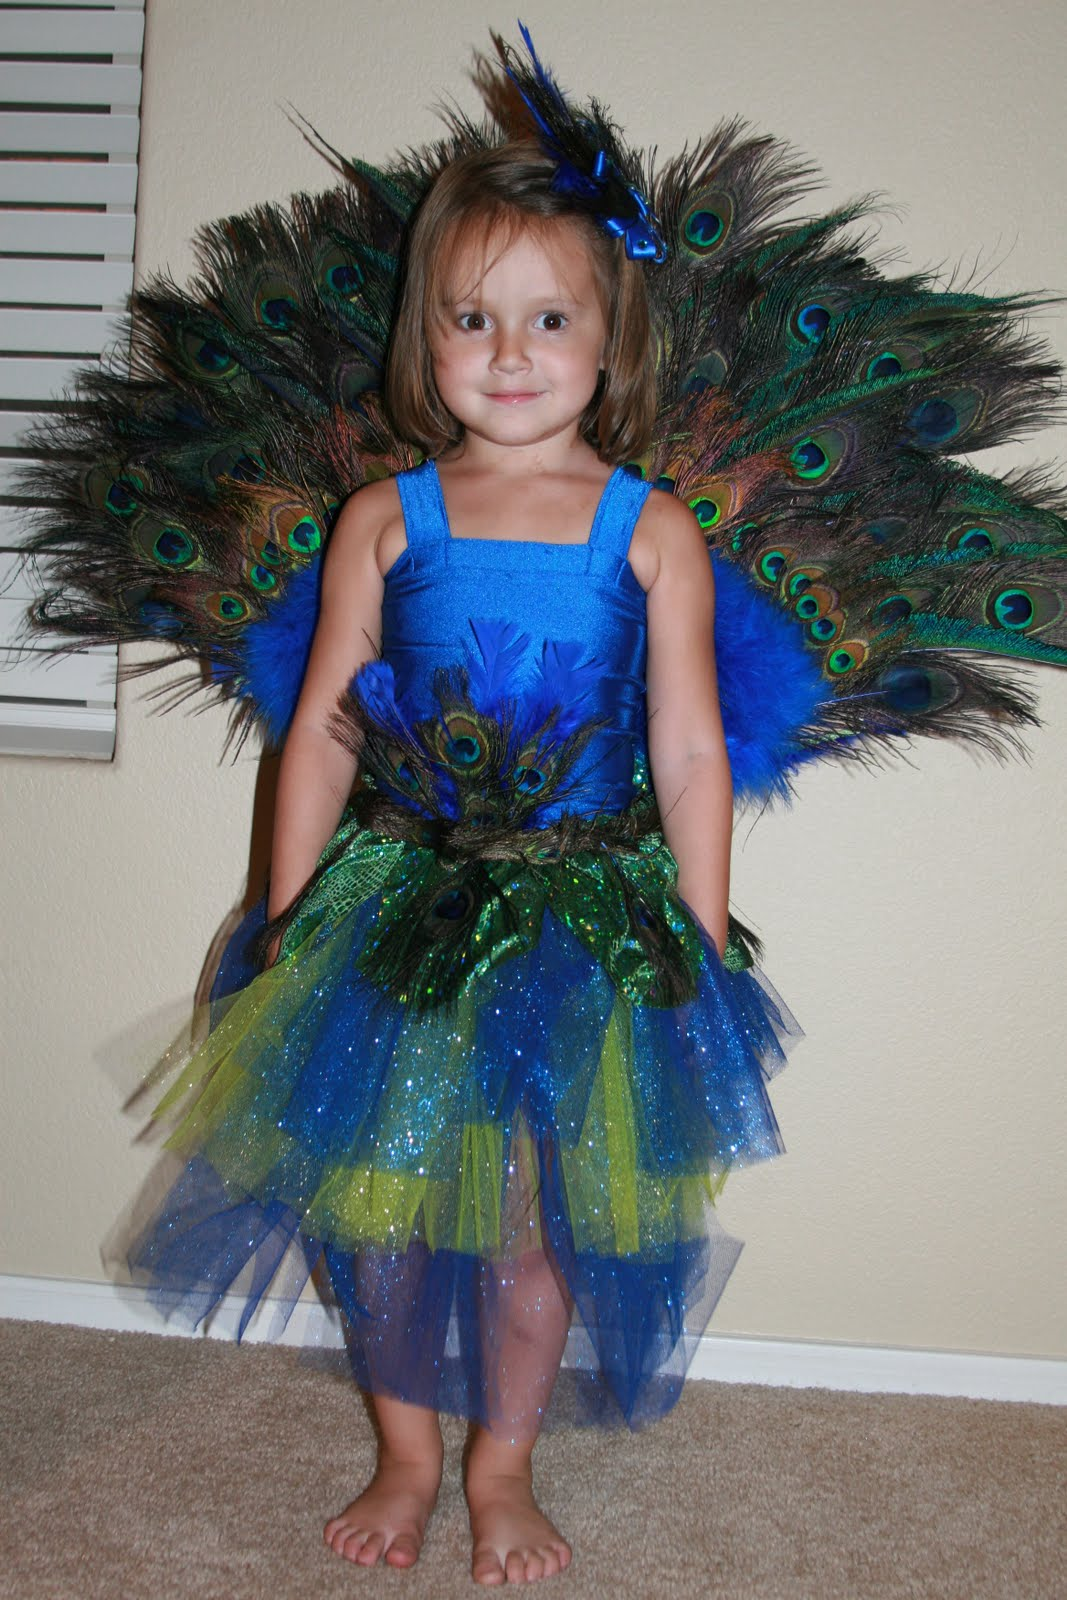 Homemade Bird Costume For Women Peacock Costumes | Cos...